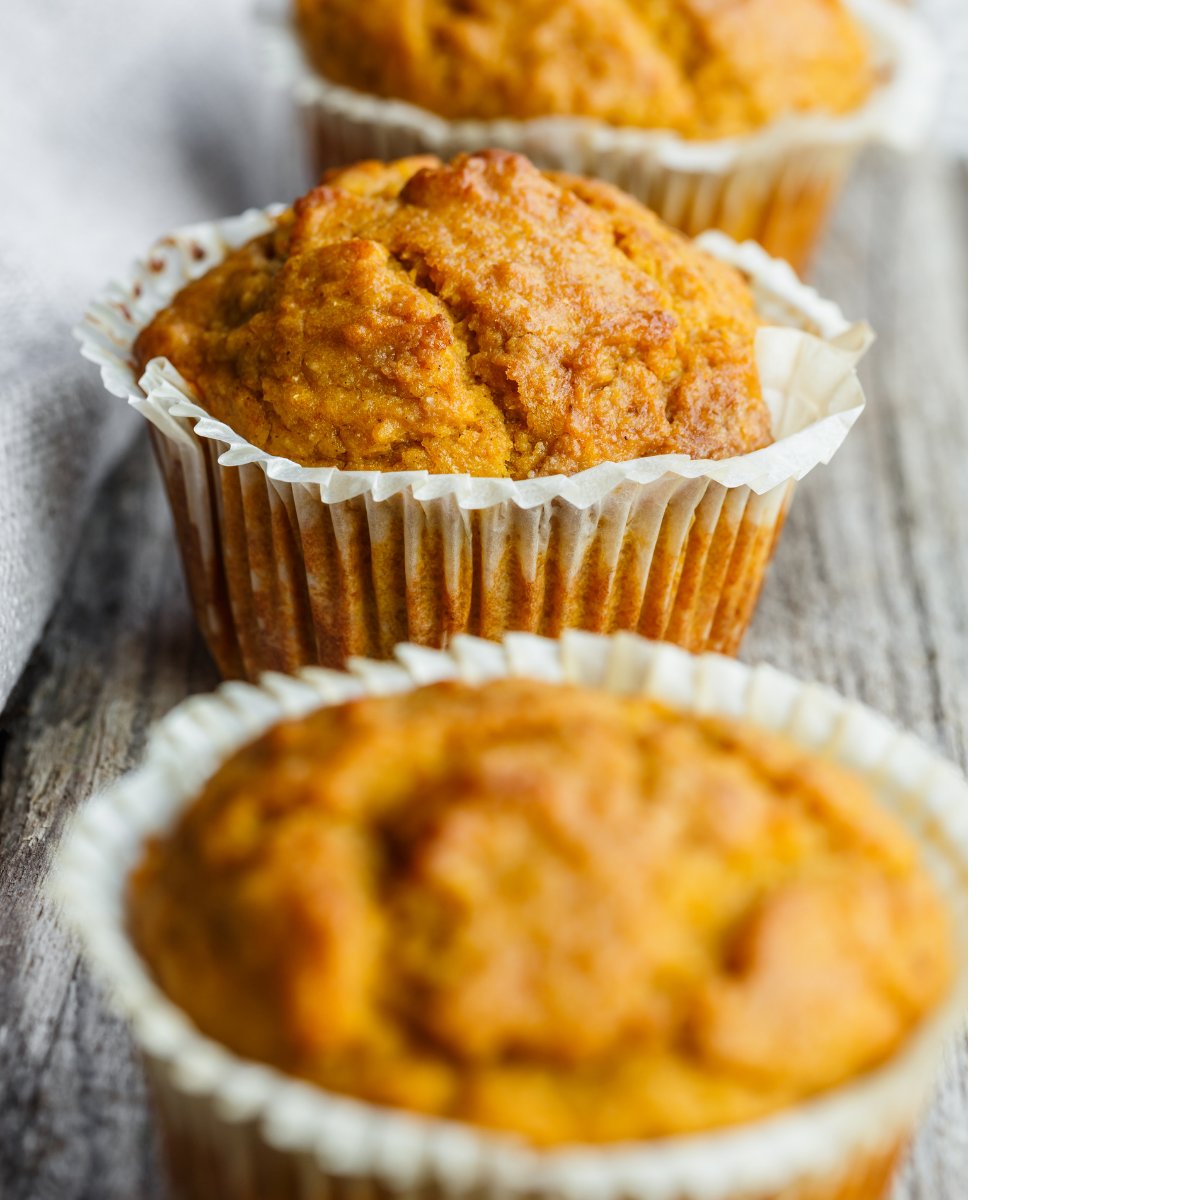 an old plank of gray barn wood with three freshly baked sourdough pumpkin banana bread muffins resting neatly on top as they cool off